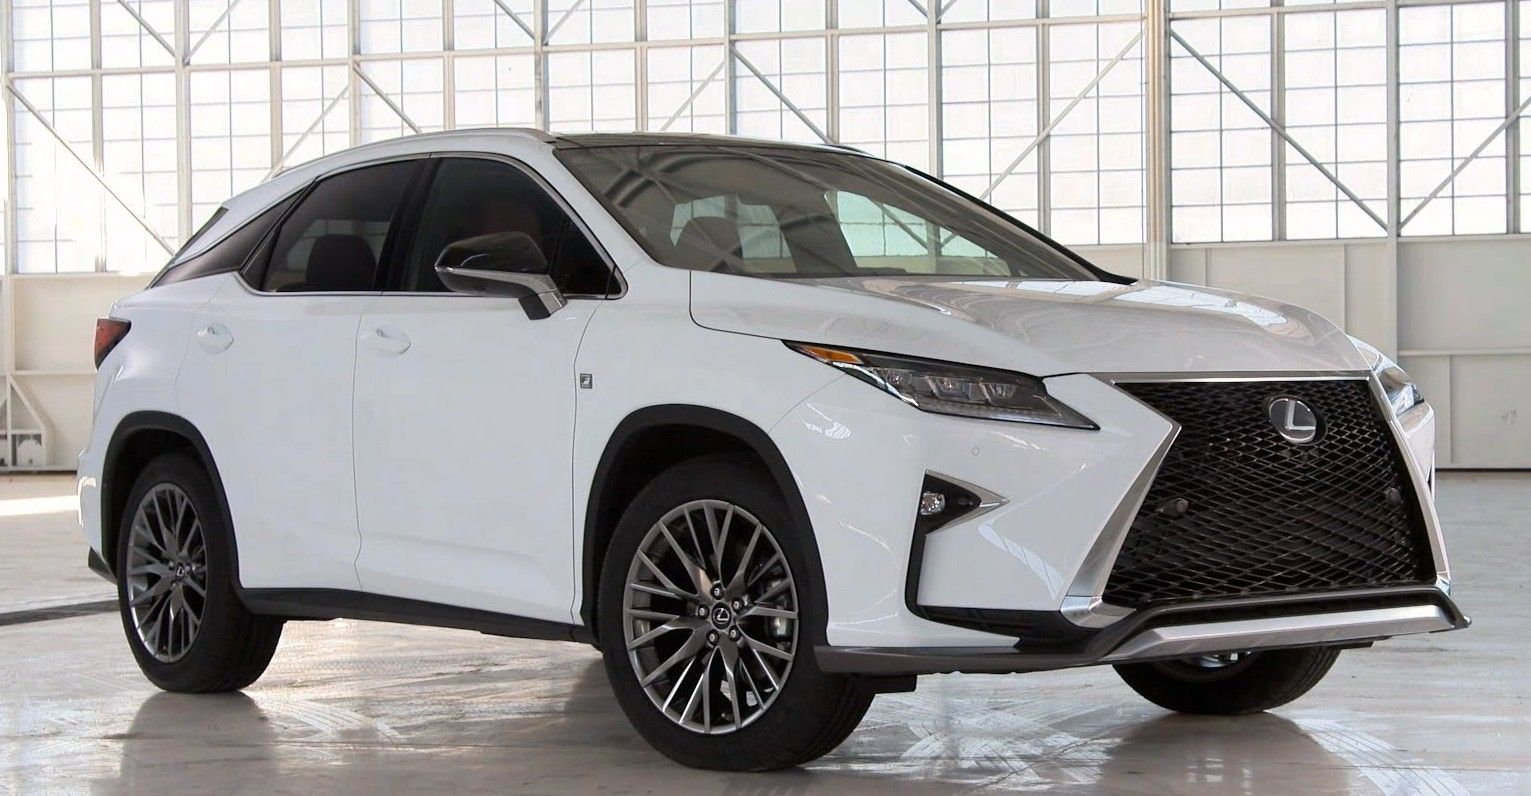 the 2016 Lexus Gets A Redesign Lexus rx 350, Fuel